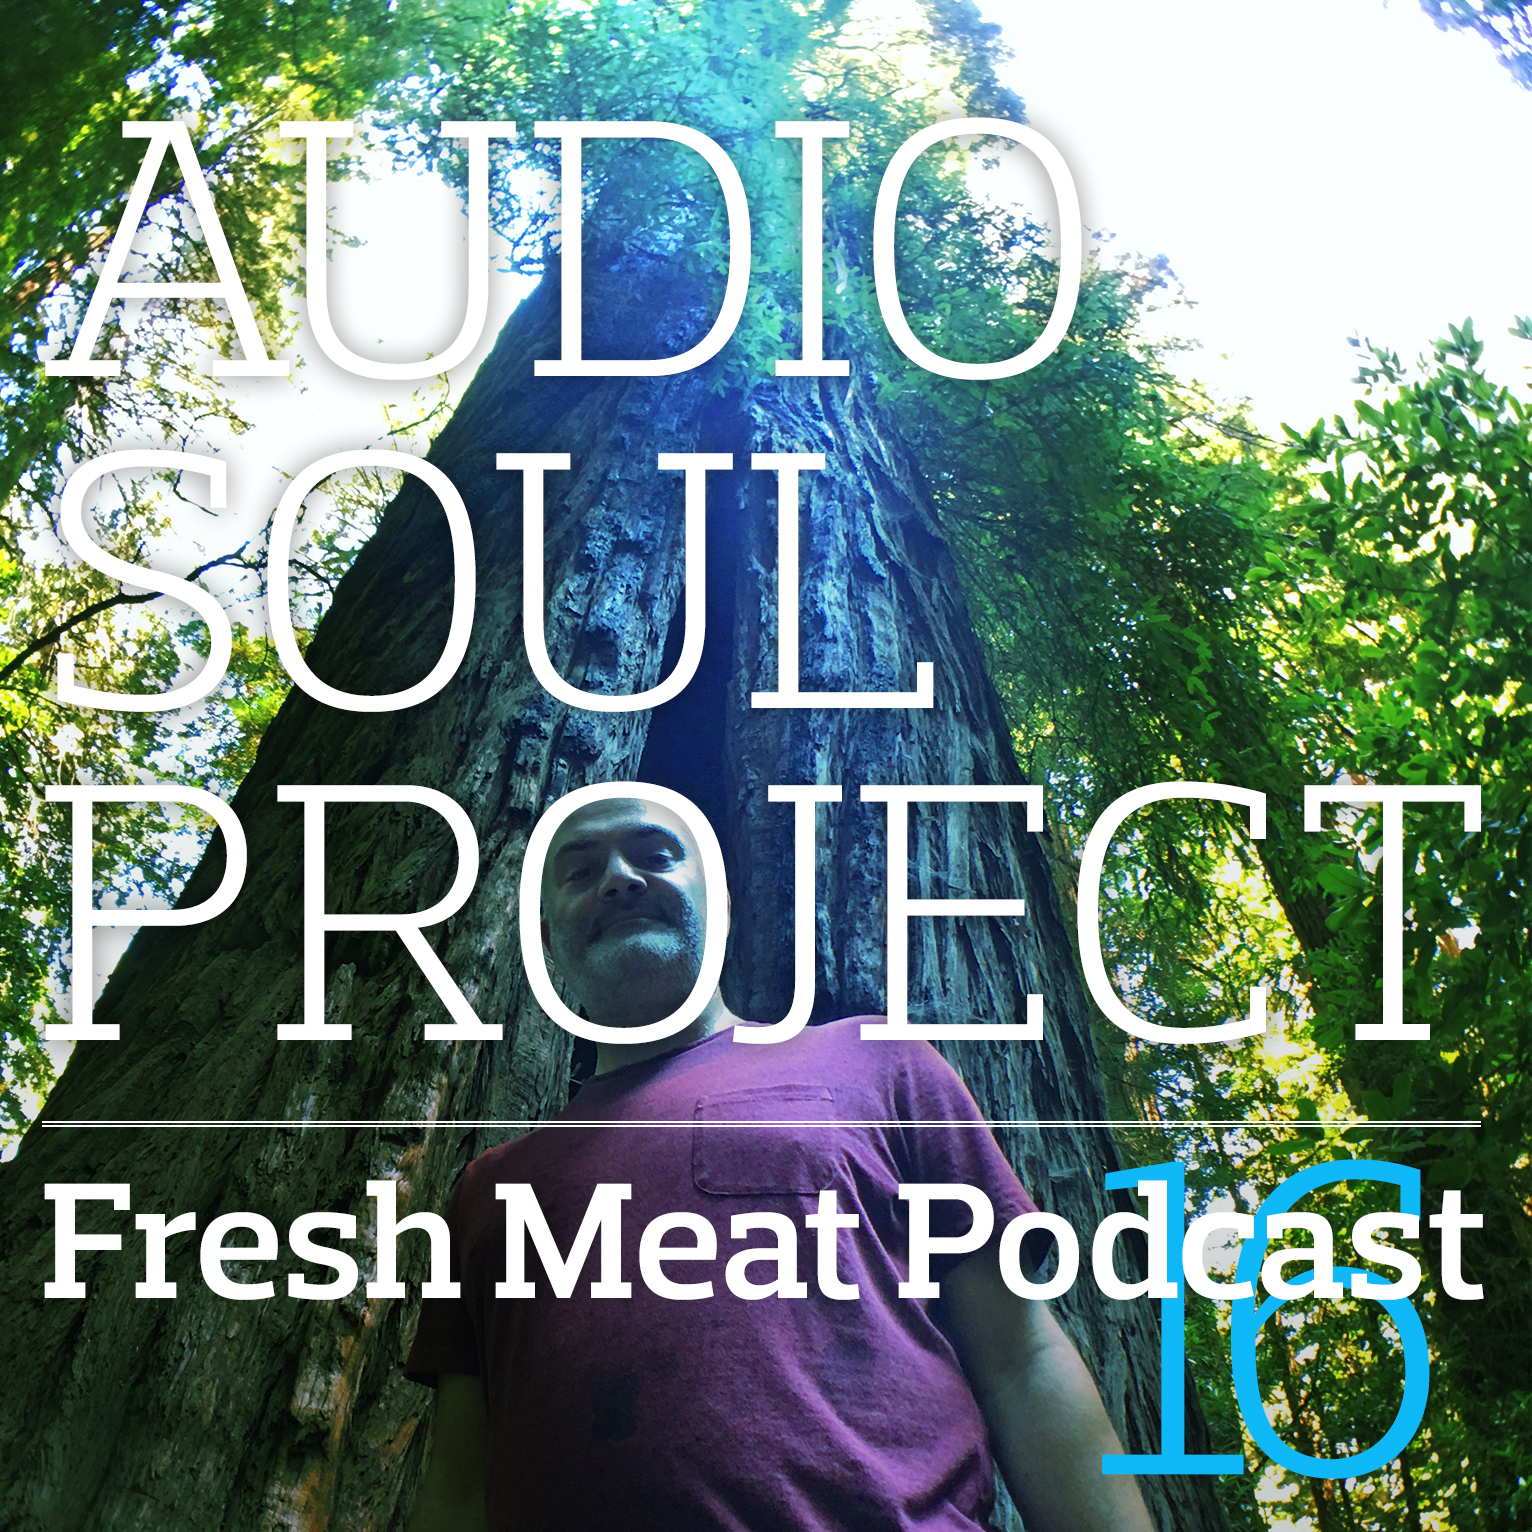 Fresh Meat Podcast 16 featured image